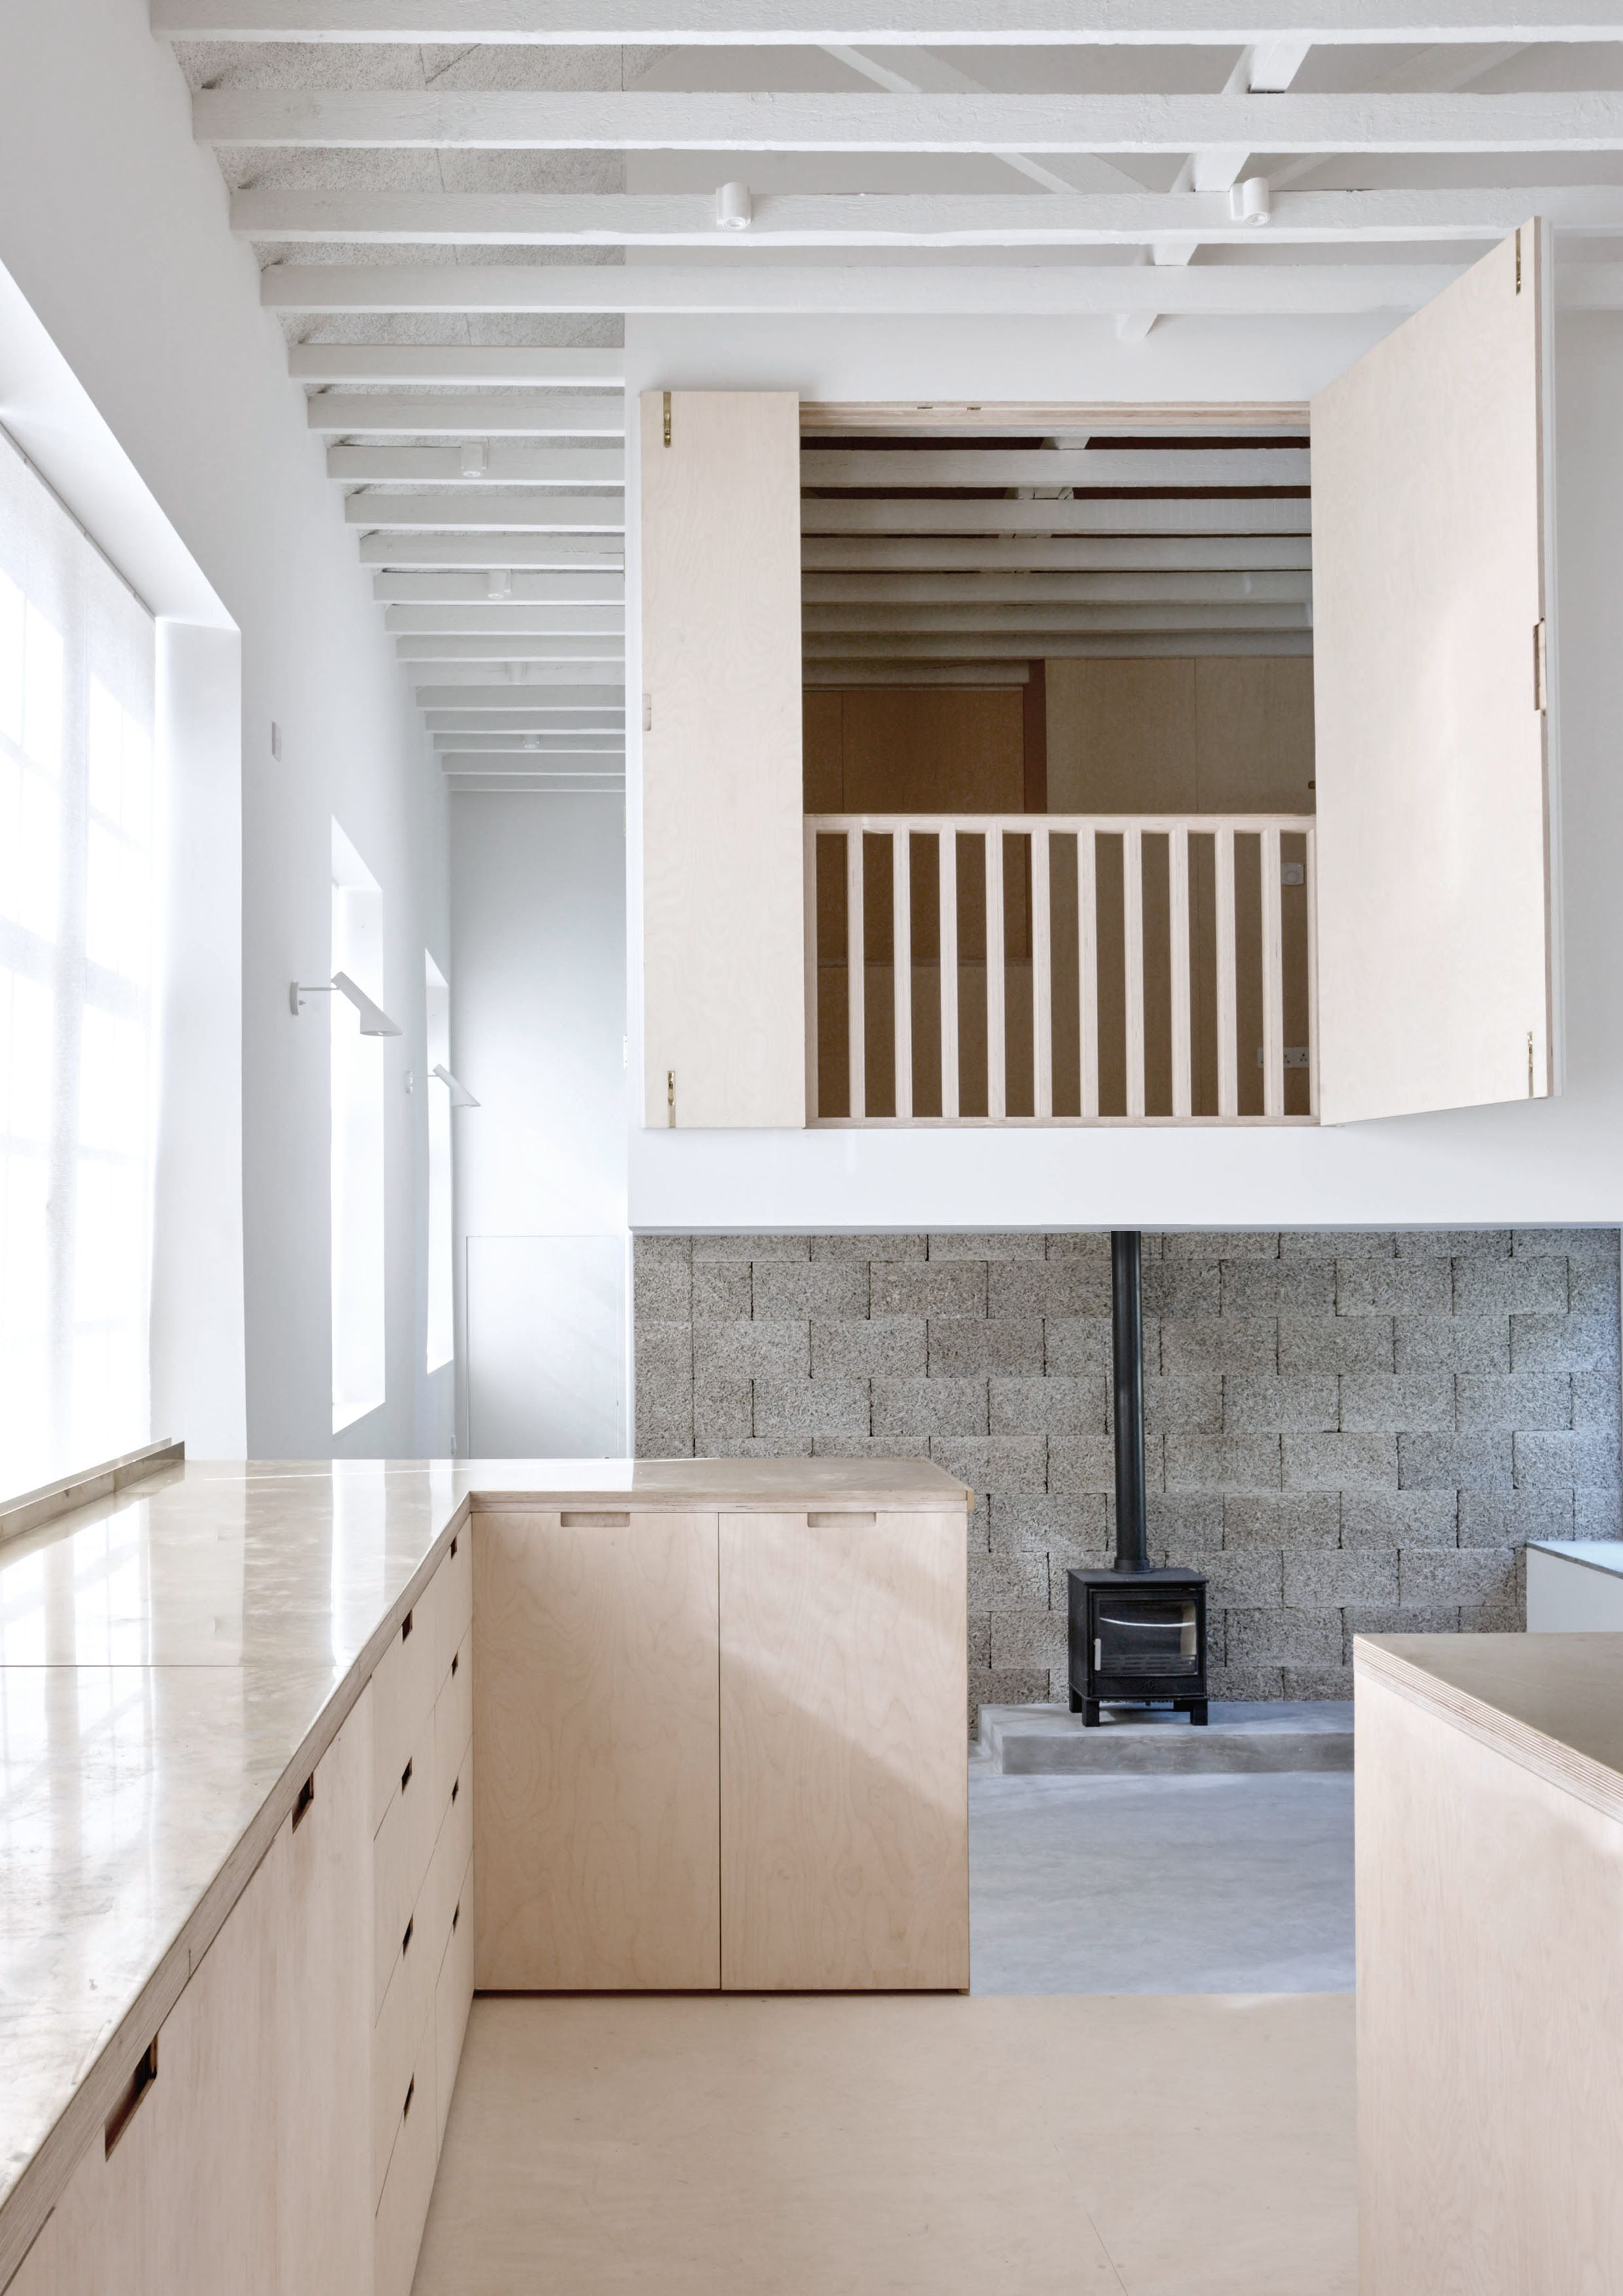 3 bedroom loft  Pin by Anne Engsted on Øko hus  Pinterest  Town house Kitchens